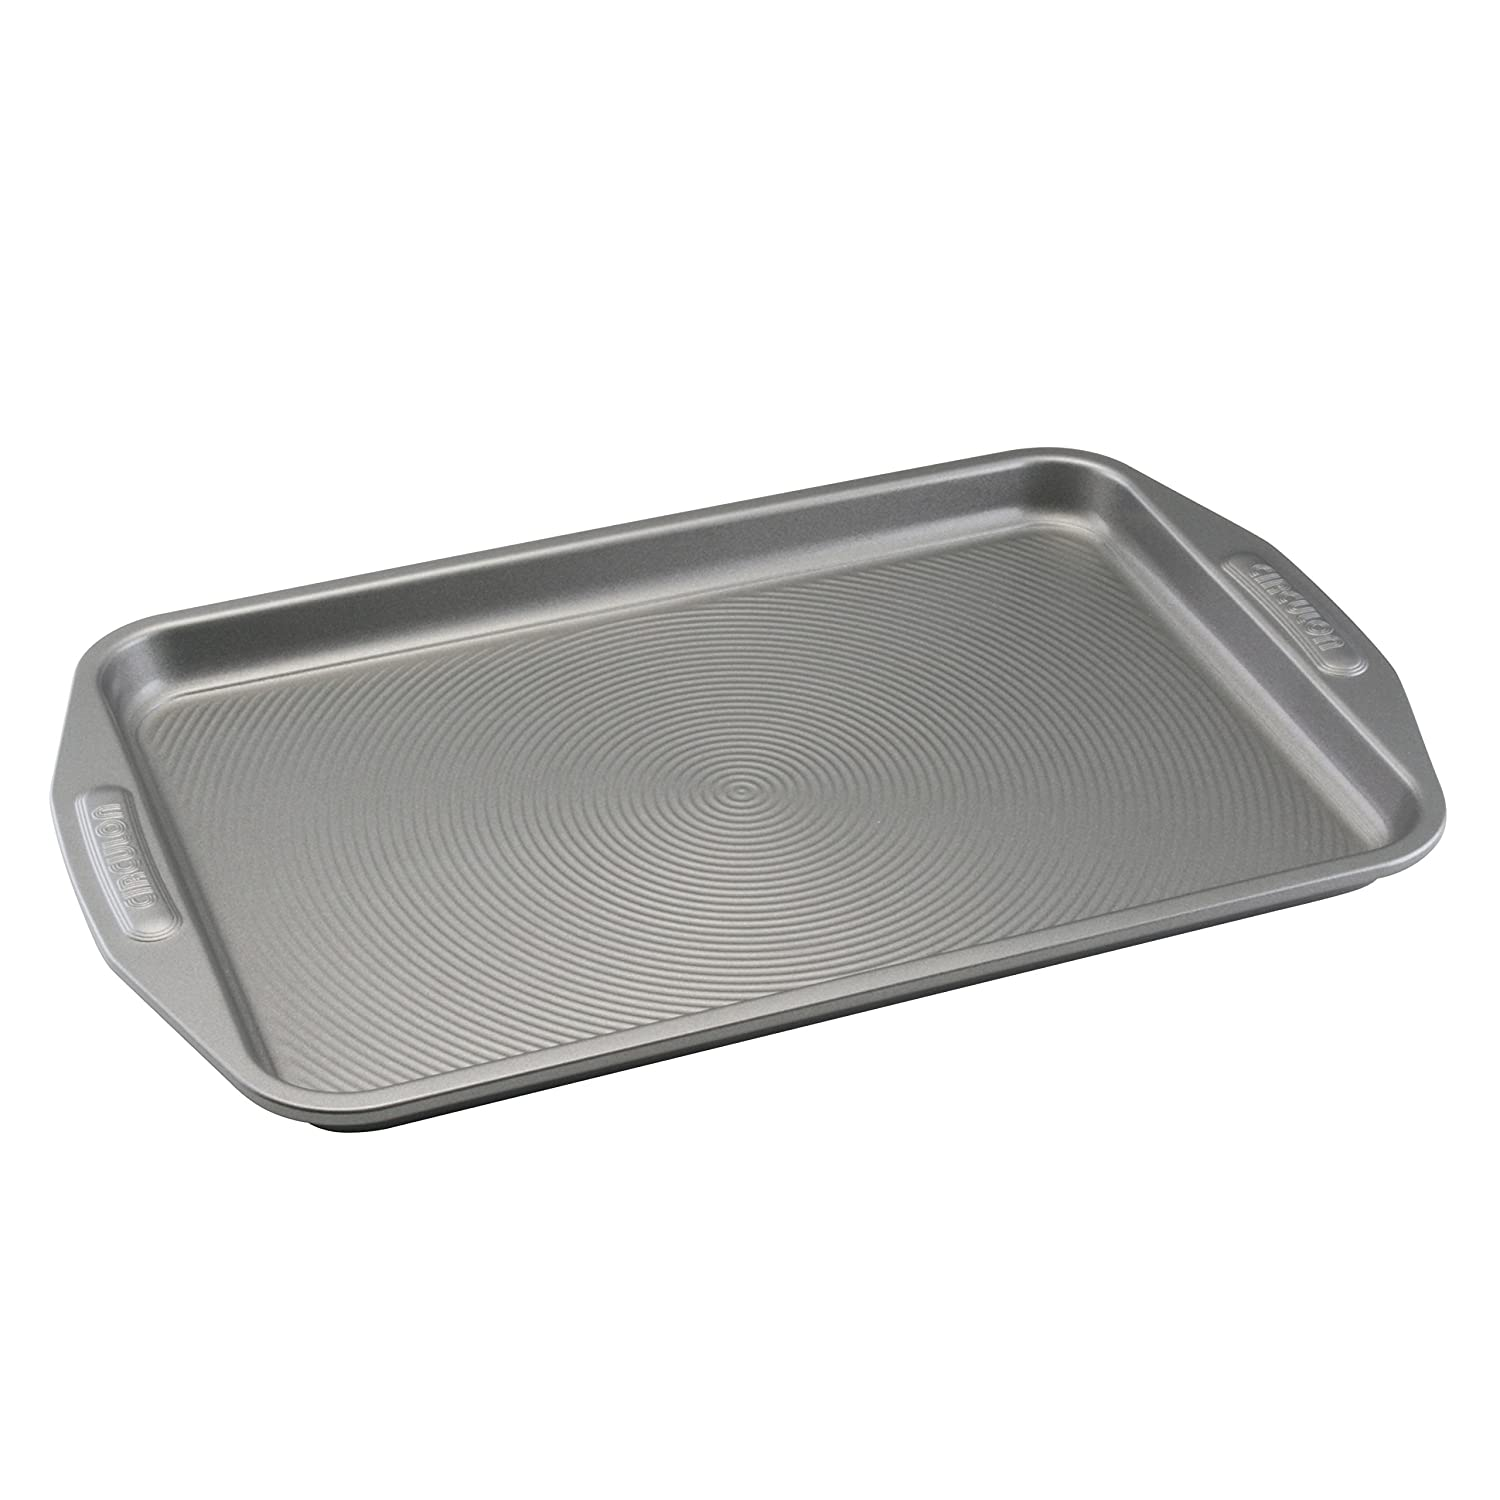 "Circulon 51131 Bakeware Baking Sheet, 10"" x 15"""